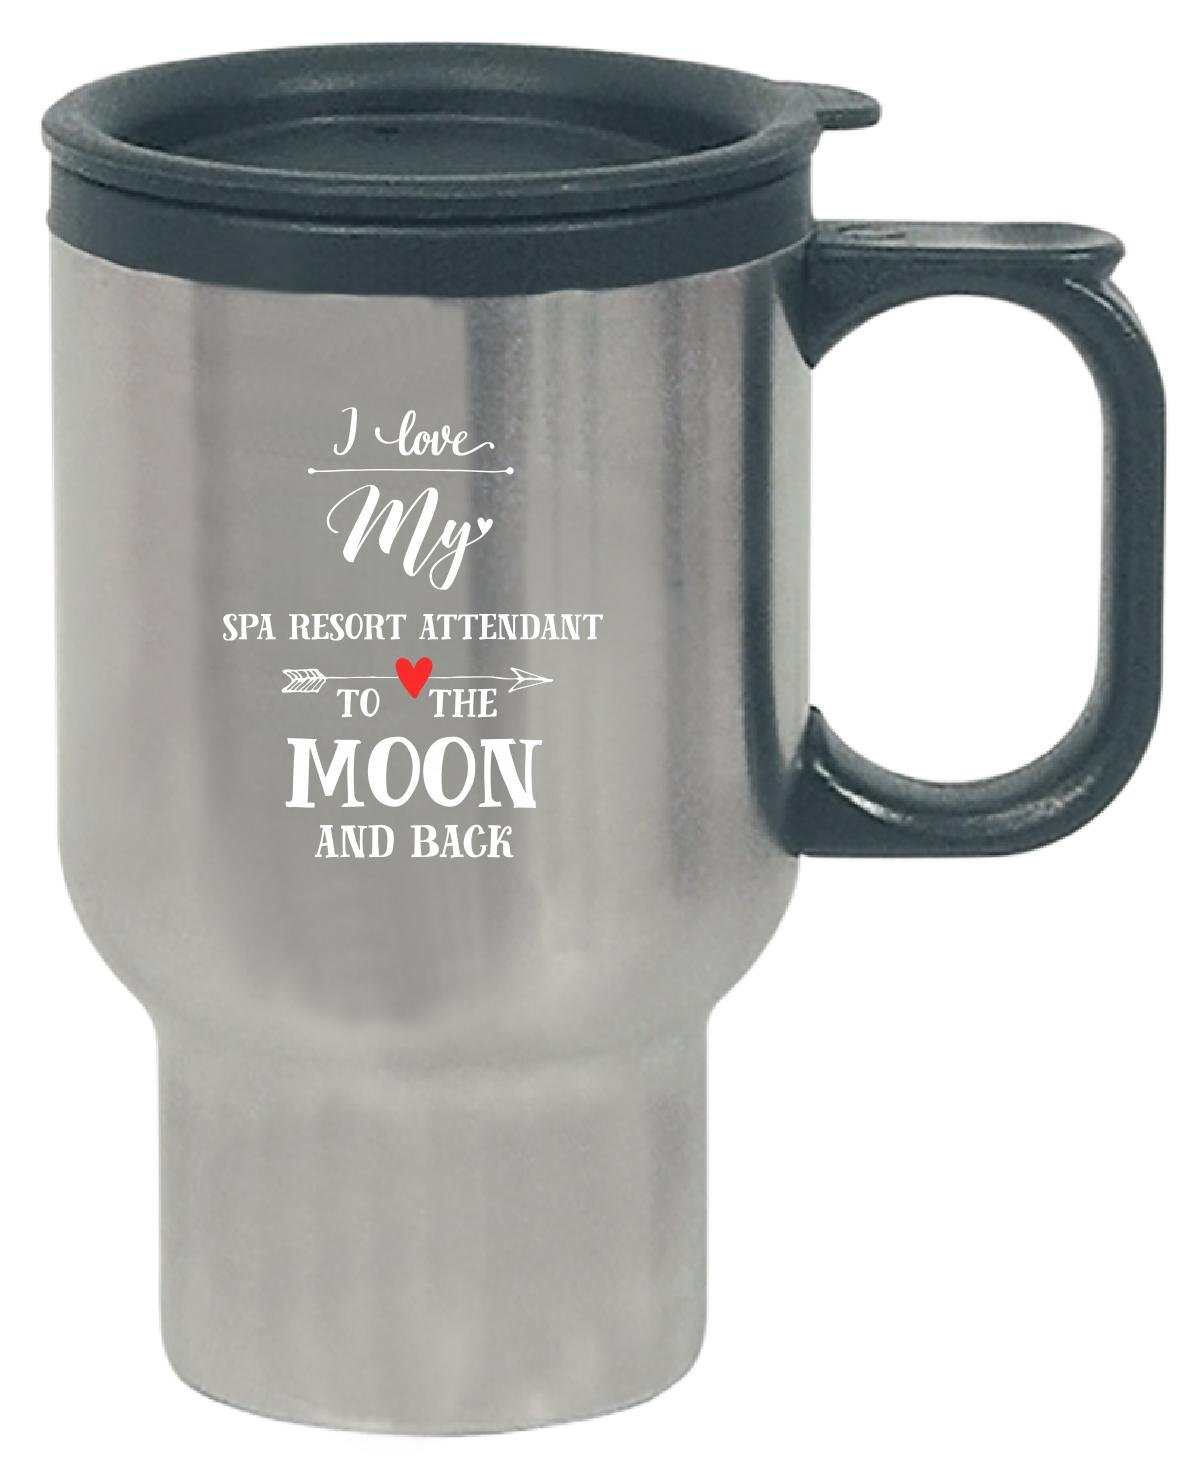 I Love My Spa Resort Attendant To The Moon And Back - Travel Mug